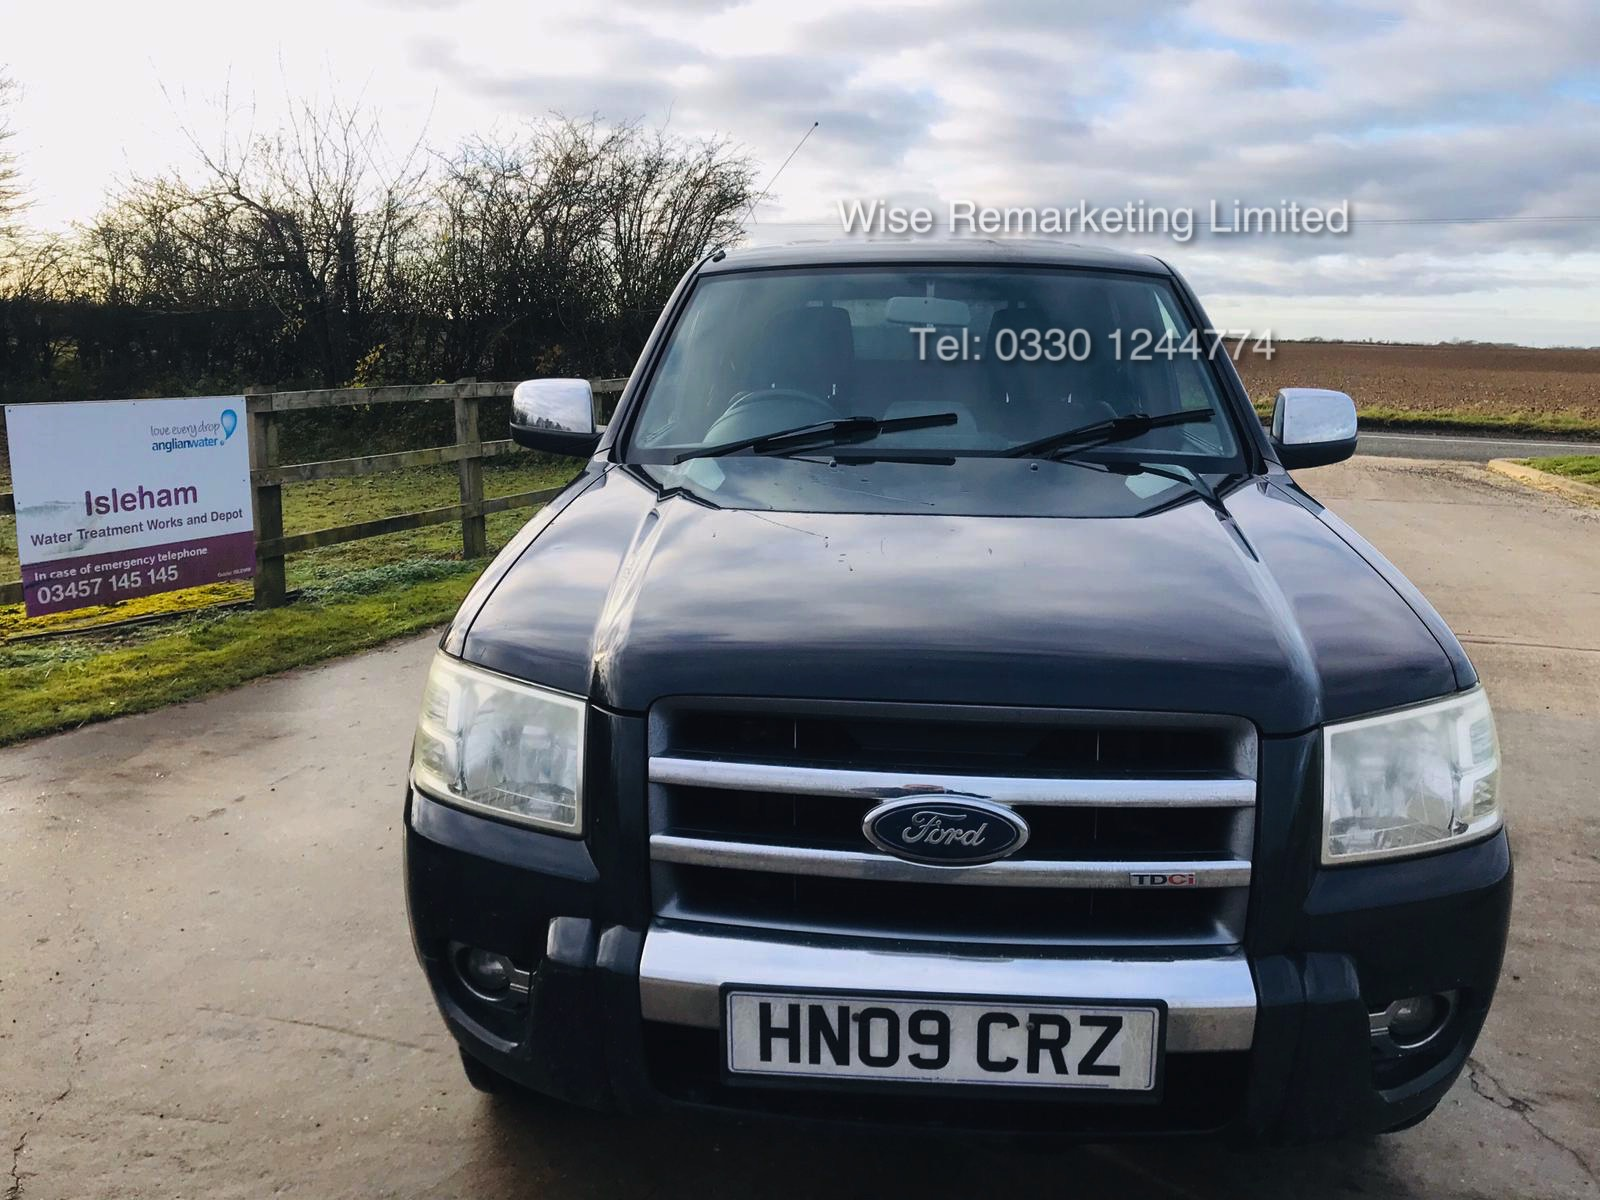 (RESERVE MET) Ford Ranger Thunder 2.5 Double Cab Pick Up - 2009 09 Reg - 4x4 - Service History - Image 5 of 17